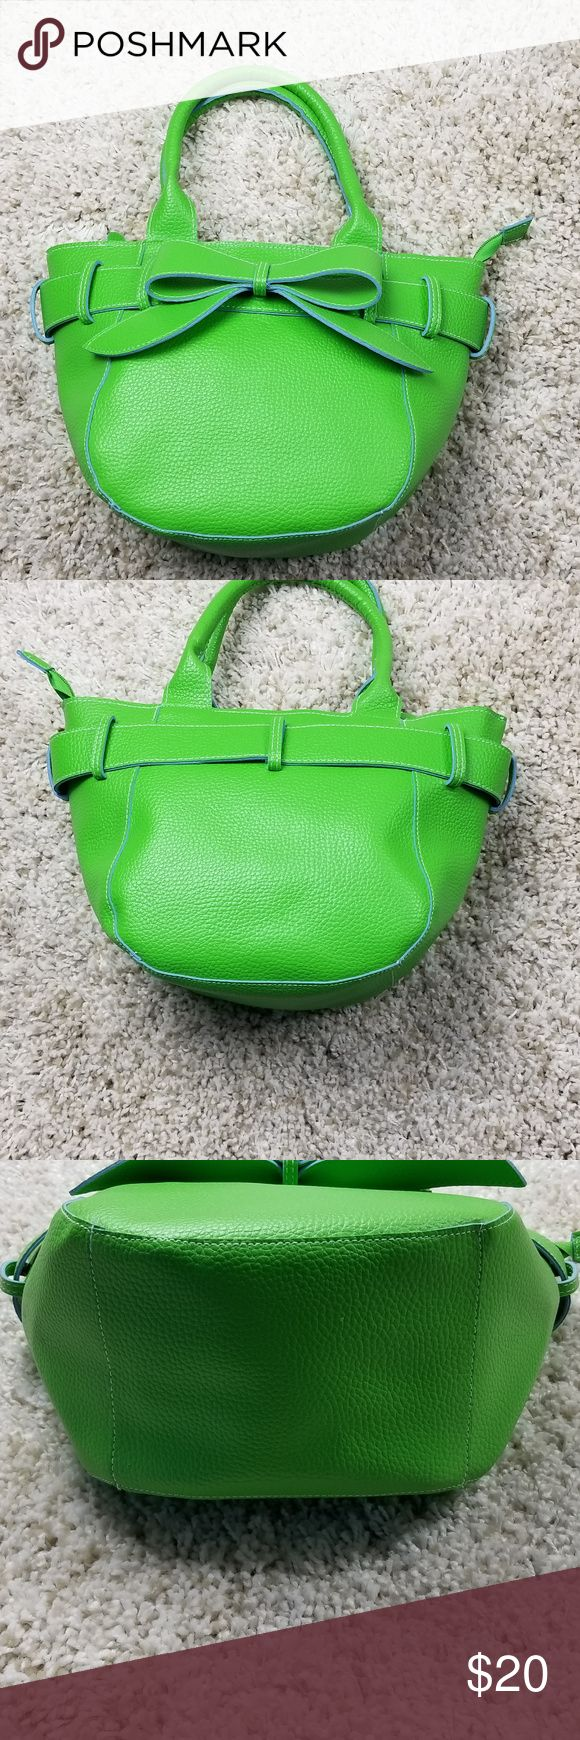 """MSC-Mainstreet-Collection-Green-Satchel MSC Mainstreet Collection Bow Textured Satchel with polka dot polyester lining.   In like new condition, no stains, rips or tears Lime Green MSC Mainstreet Collection Lime Green Women's Faux Leather Handbag Top zip closure Belt with belt loop design around the purse 2 inside open pockets 1 zip inside pocket Width – approx. 13""""   Height – approx. 9"""" Depth. Approx.  5"""" Handle drop – Approx. 6 ½"""" Mainstreet Collection Bags Satchels"""